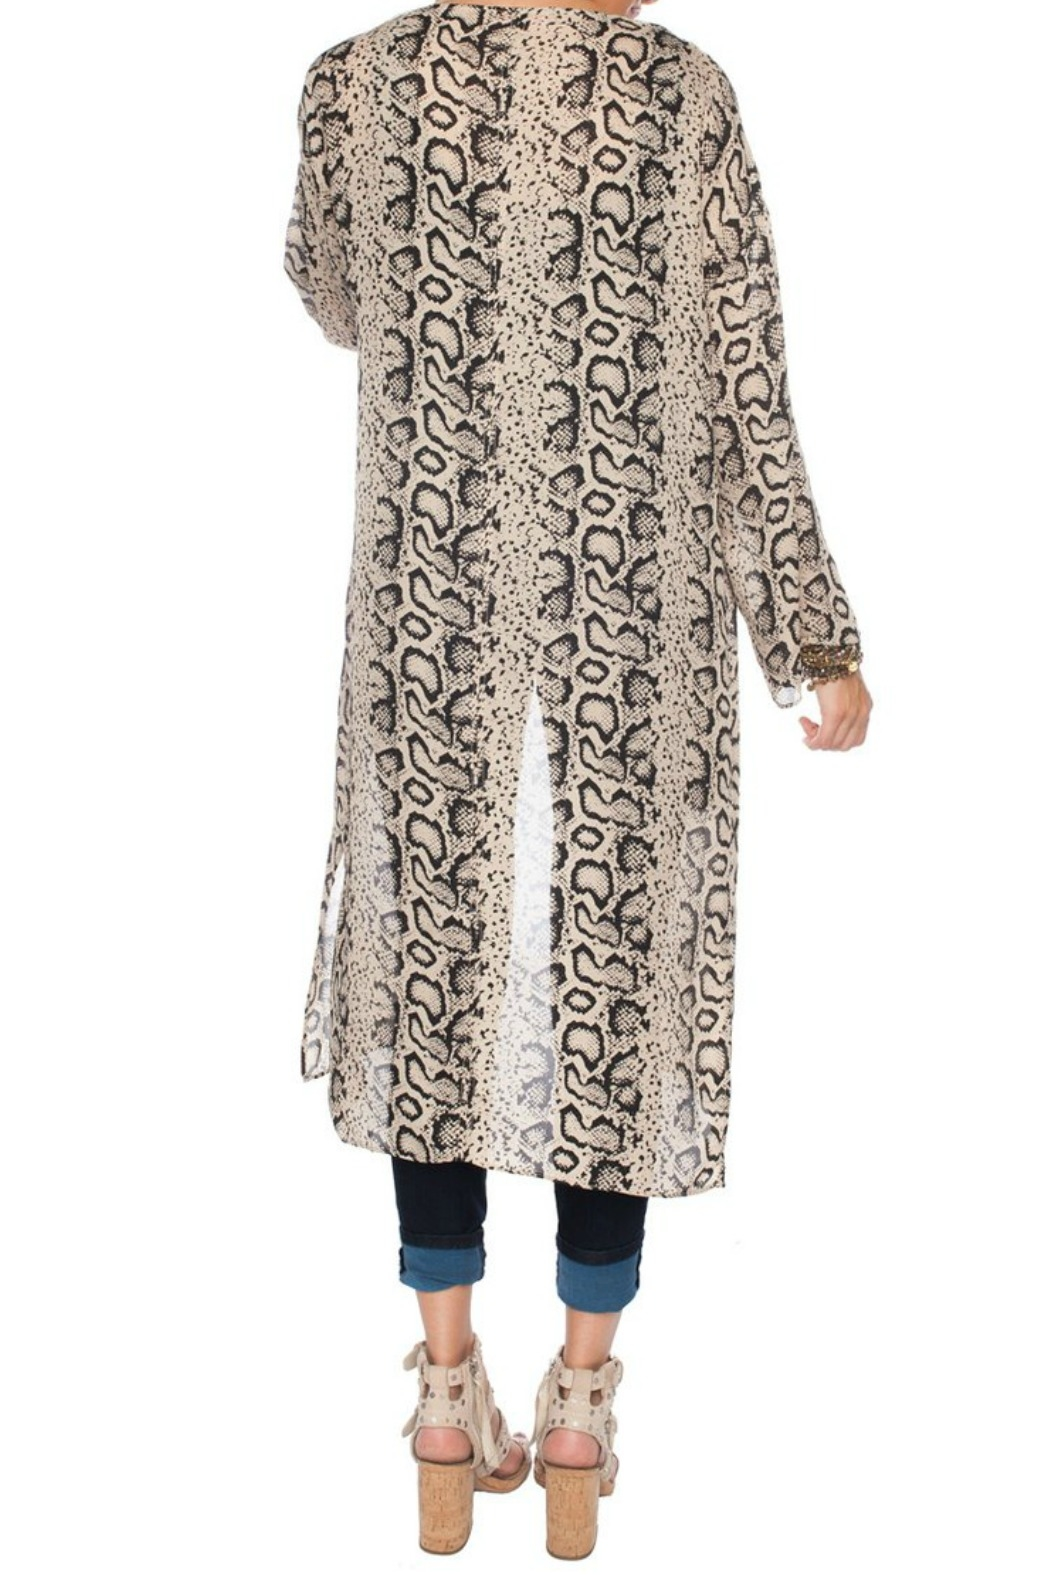 Buddy Love Snake Print Duster - Side Cropped Image